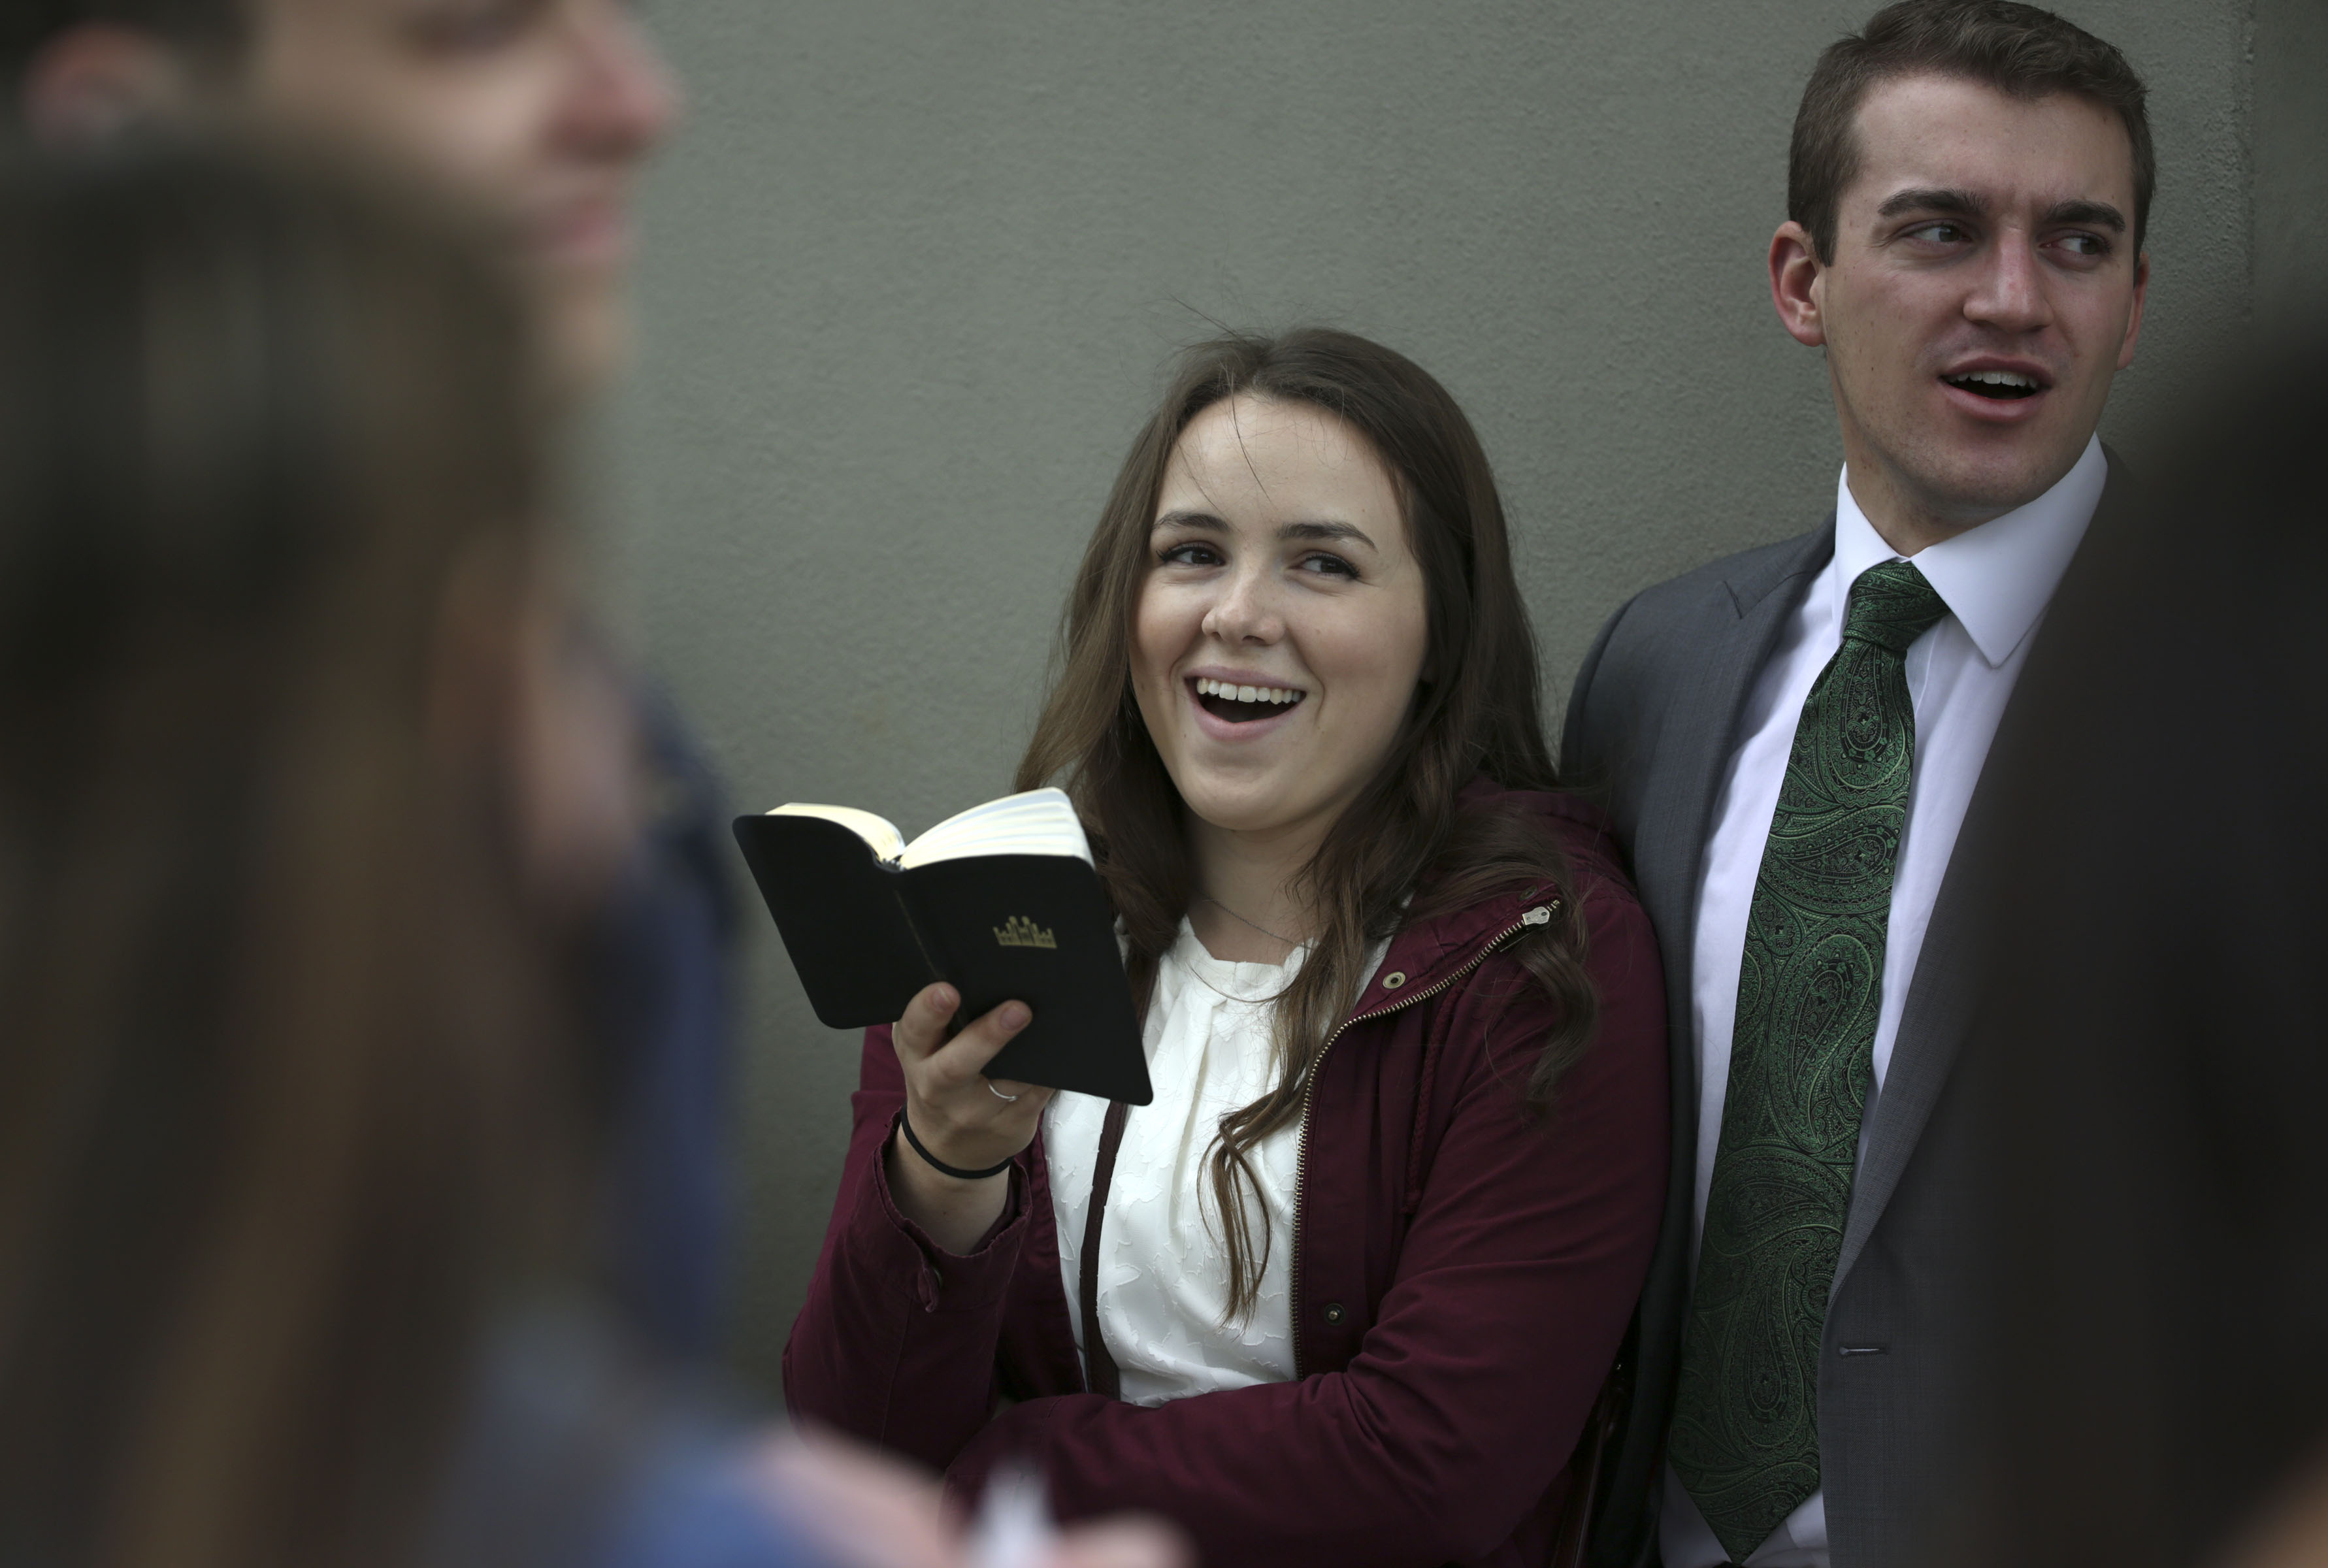 Ariana Halbeisen and Jordan Harlan sing hymns with other members of the Logan Young Single Adults First Stake between sessions of the 188th Semiannual General Conference of The Church of Jesus Christ of Latter-day Saints outside of Temple Square in downtown Salt Lake City on Sunday, Oct. 7, 2018.